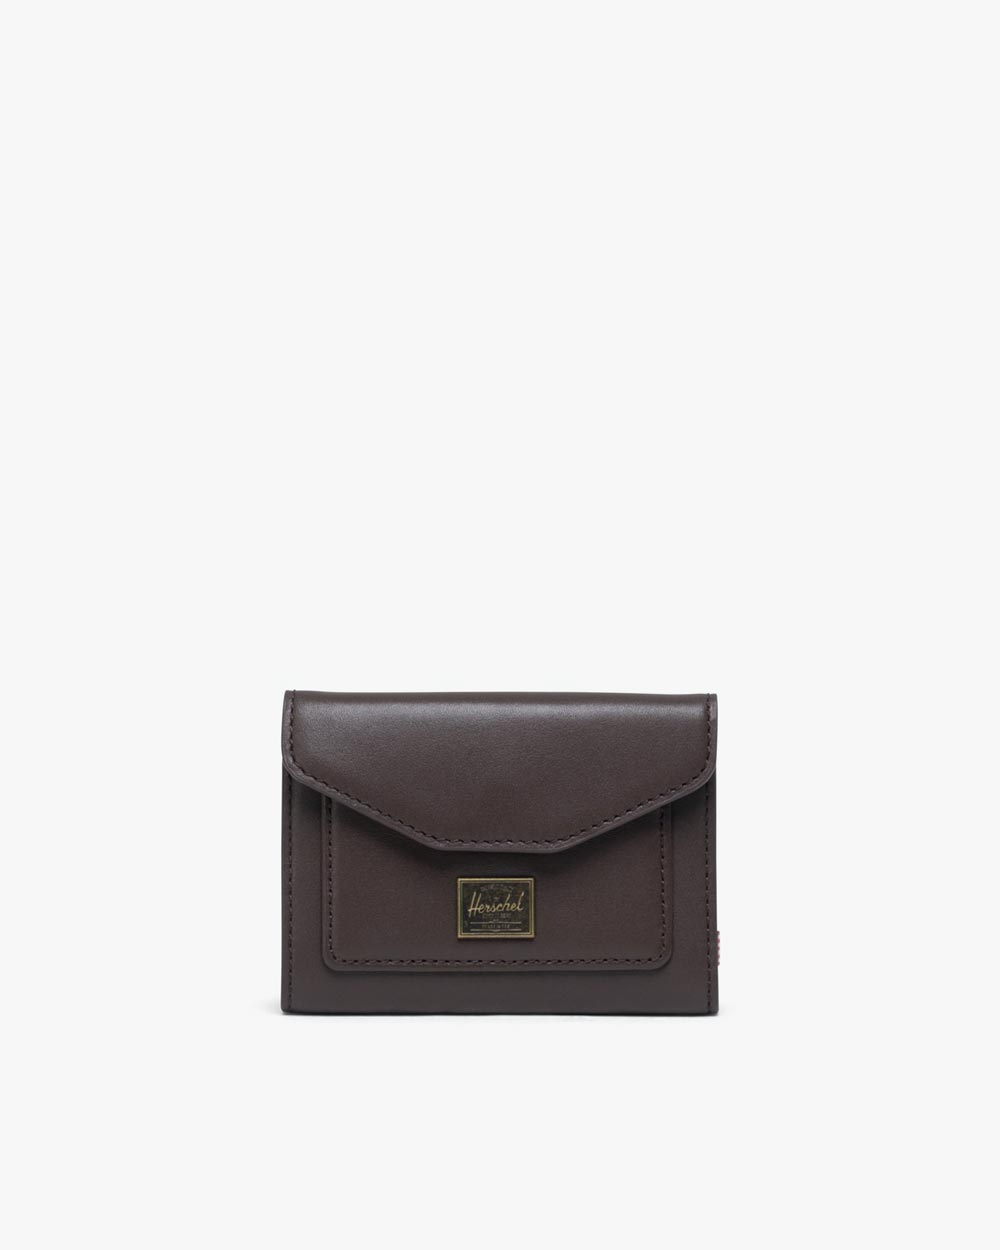 Brown leather Orion Wallet